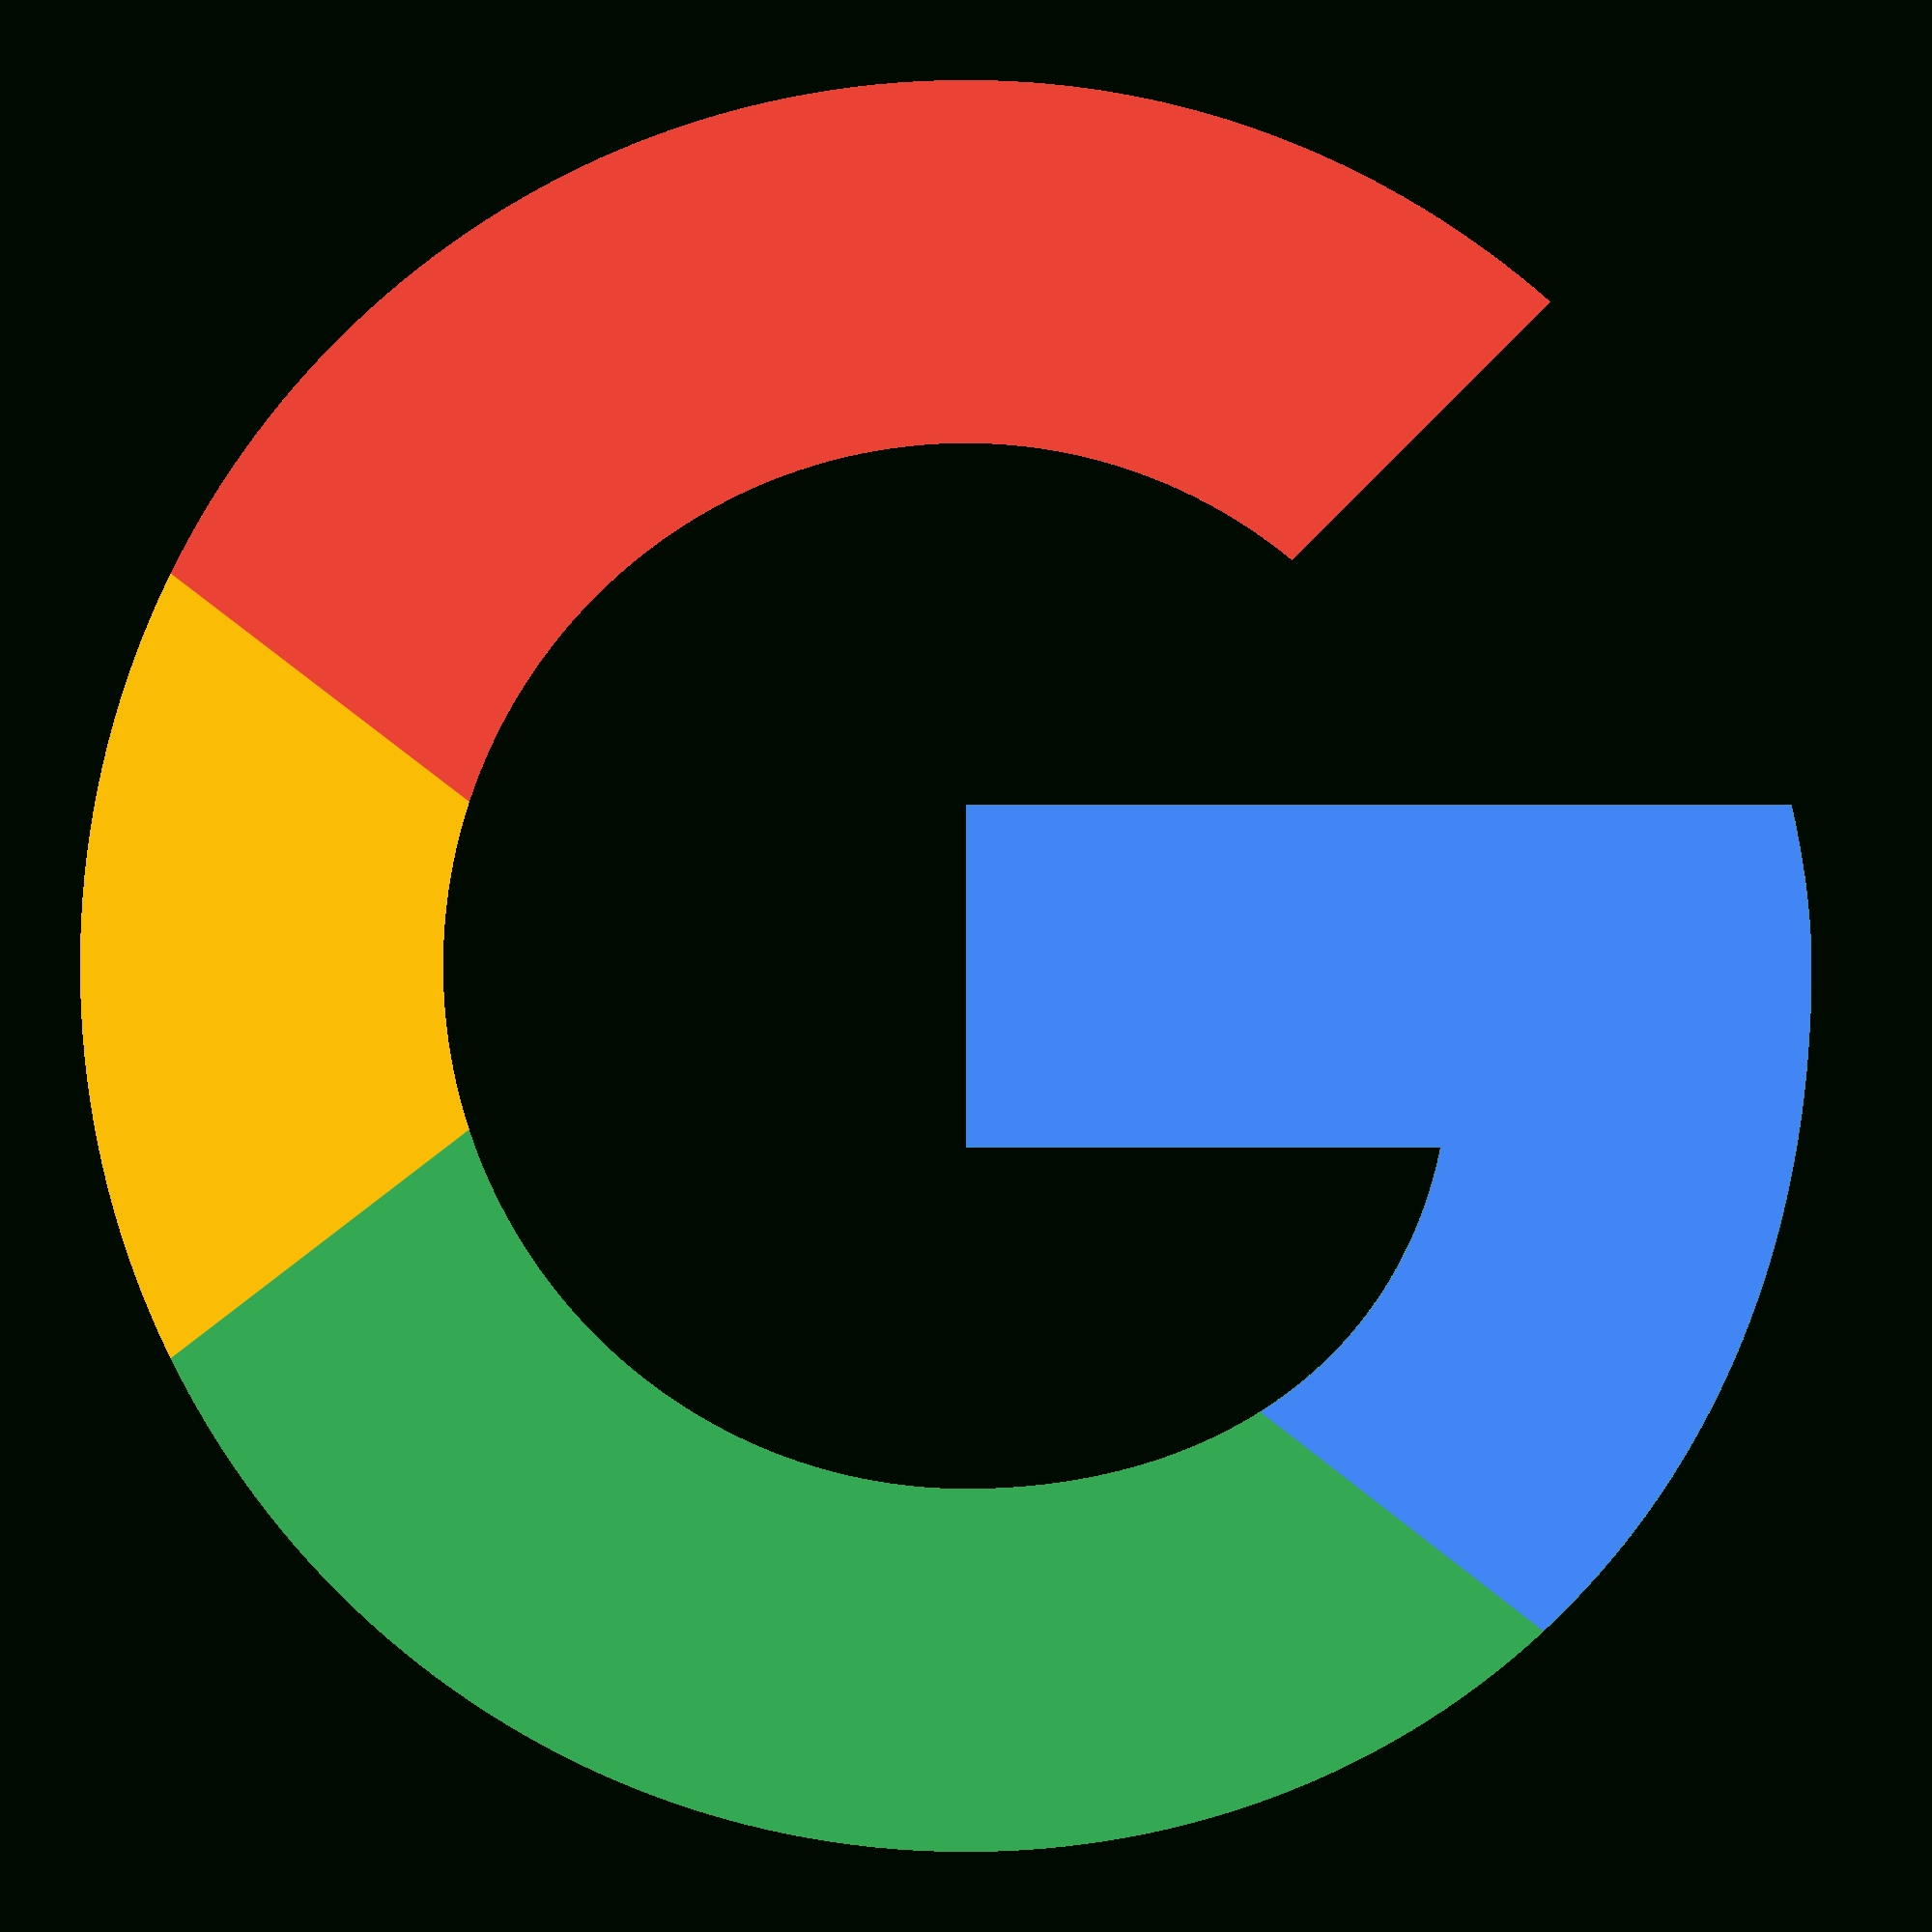 Google G Icon Png.